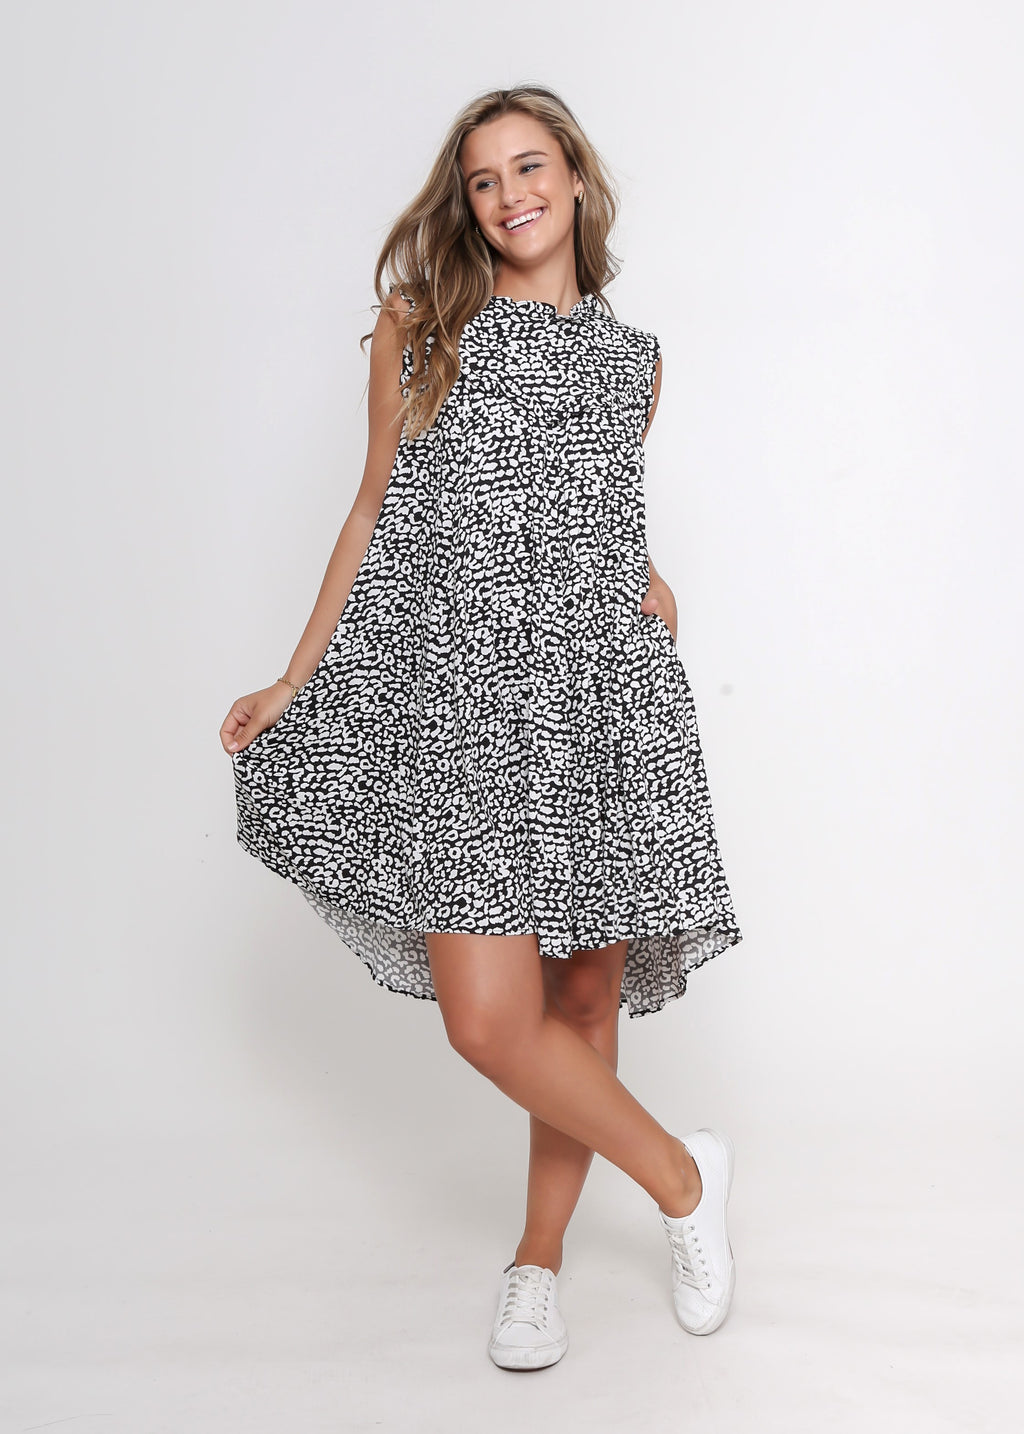 NEW - LAYLA DRESS - BLACK LEOPARD